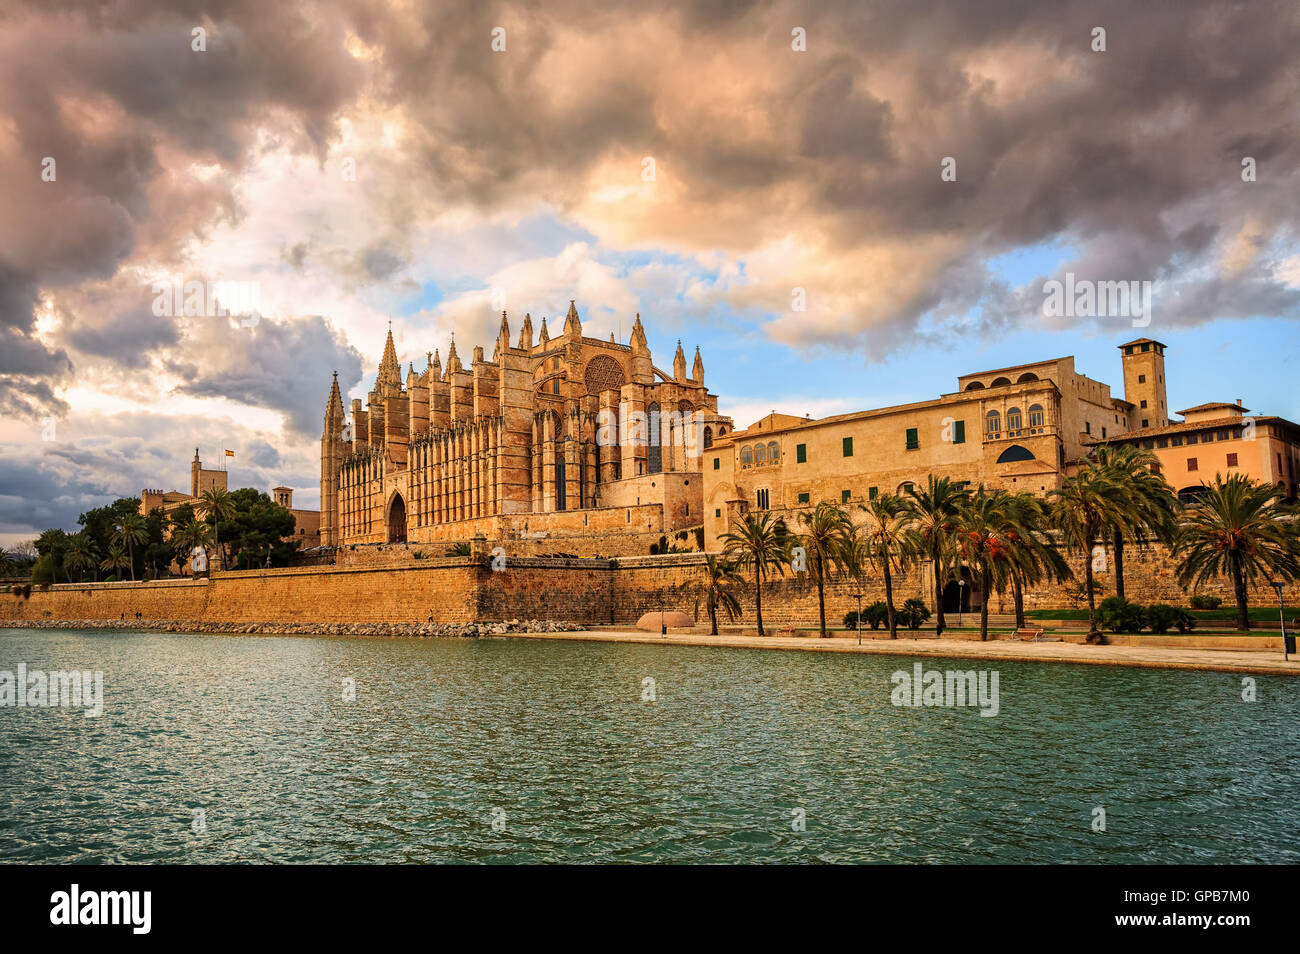 Sunset over medieval gothic La Seu, the cathedral of Palma de Mallorca, Spain - Stock Image